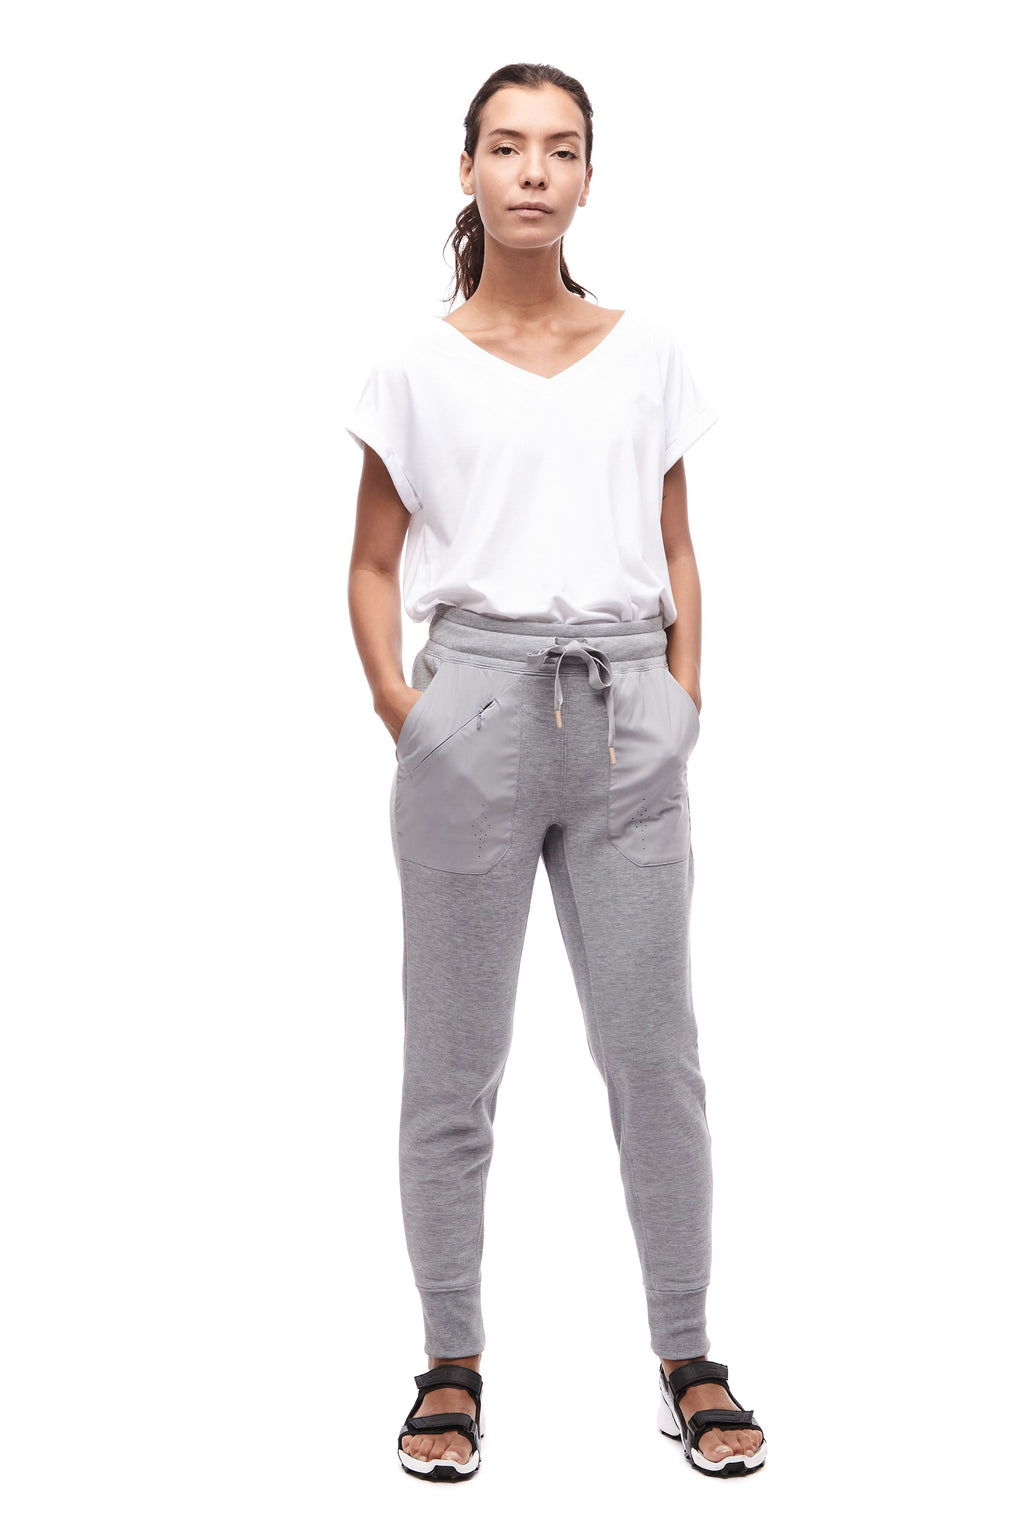 VIENO III - French Terry Jogger Pant - Grey